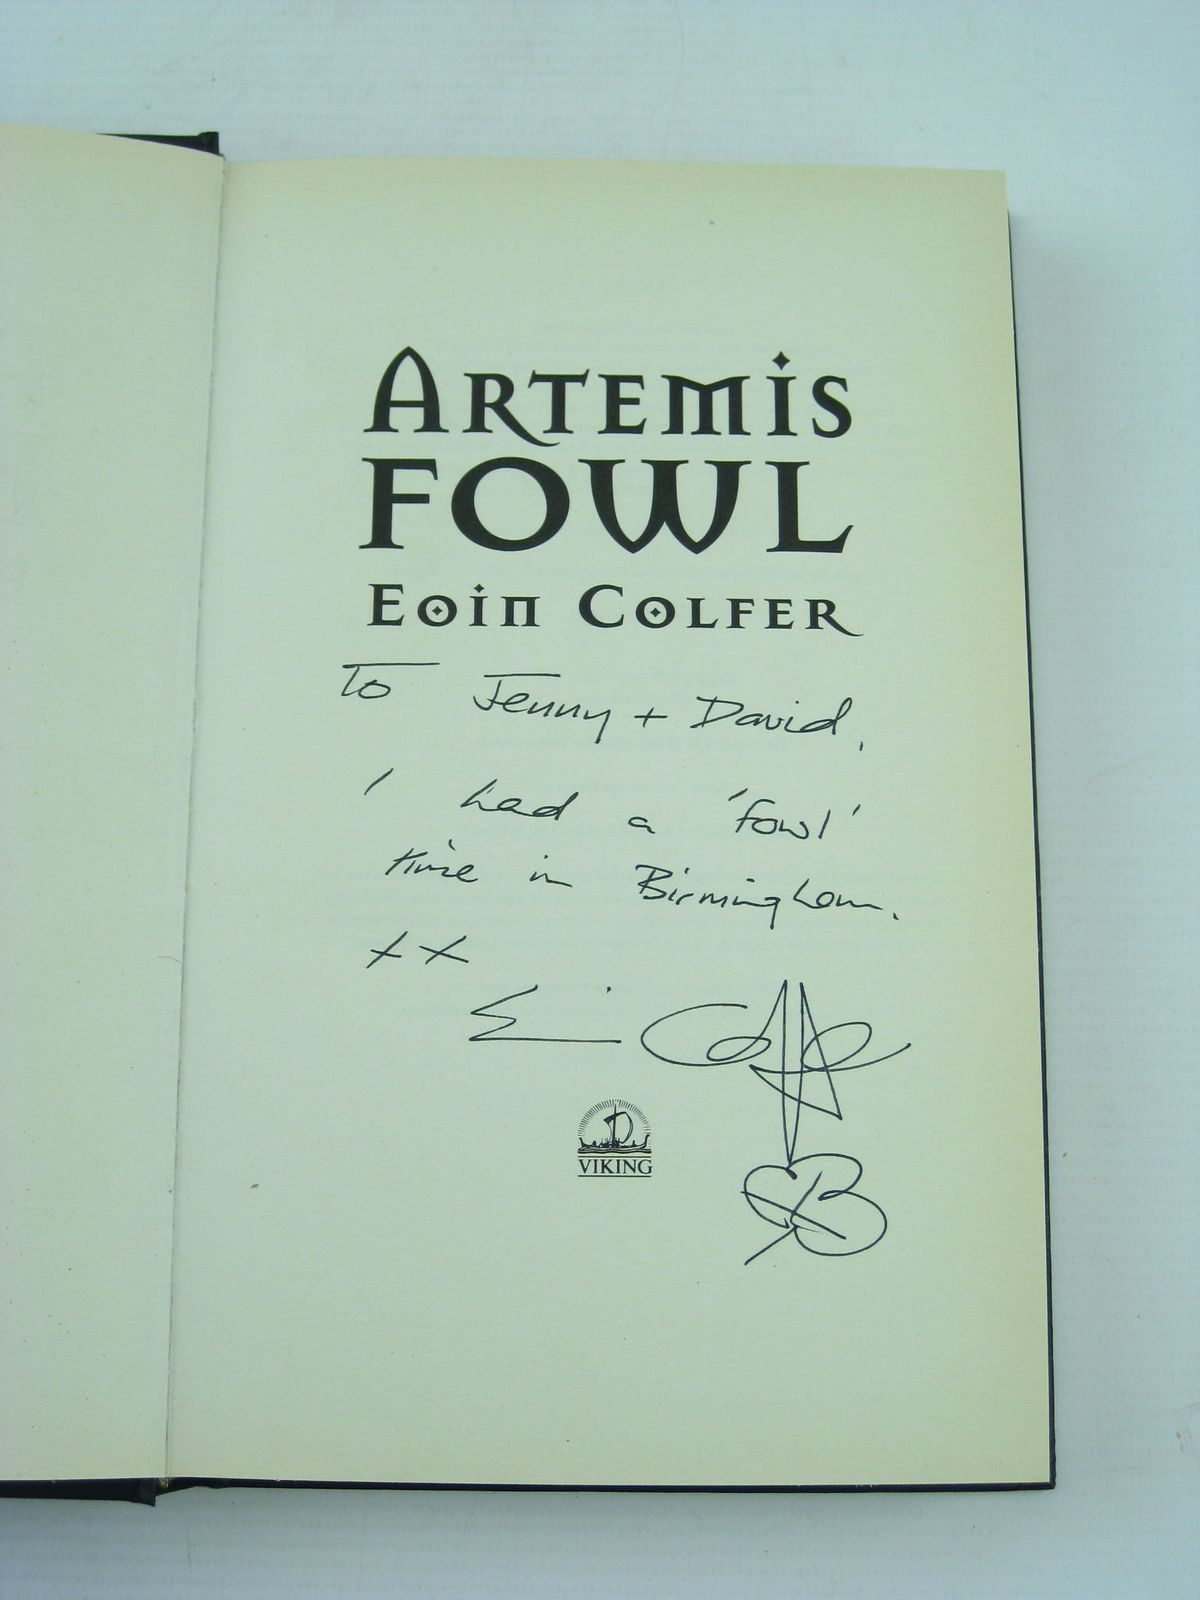 Photo Of Artemis Fowl Written By Colfer, Eoin Published By Viking (stock  Code: